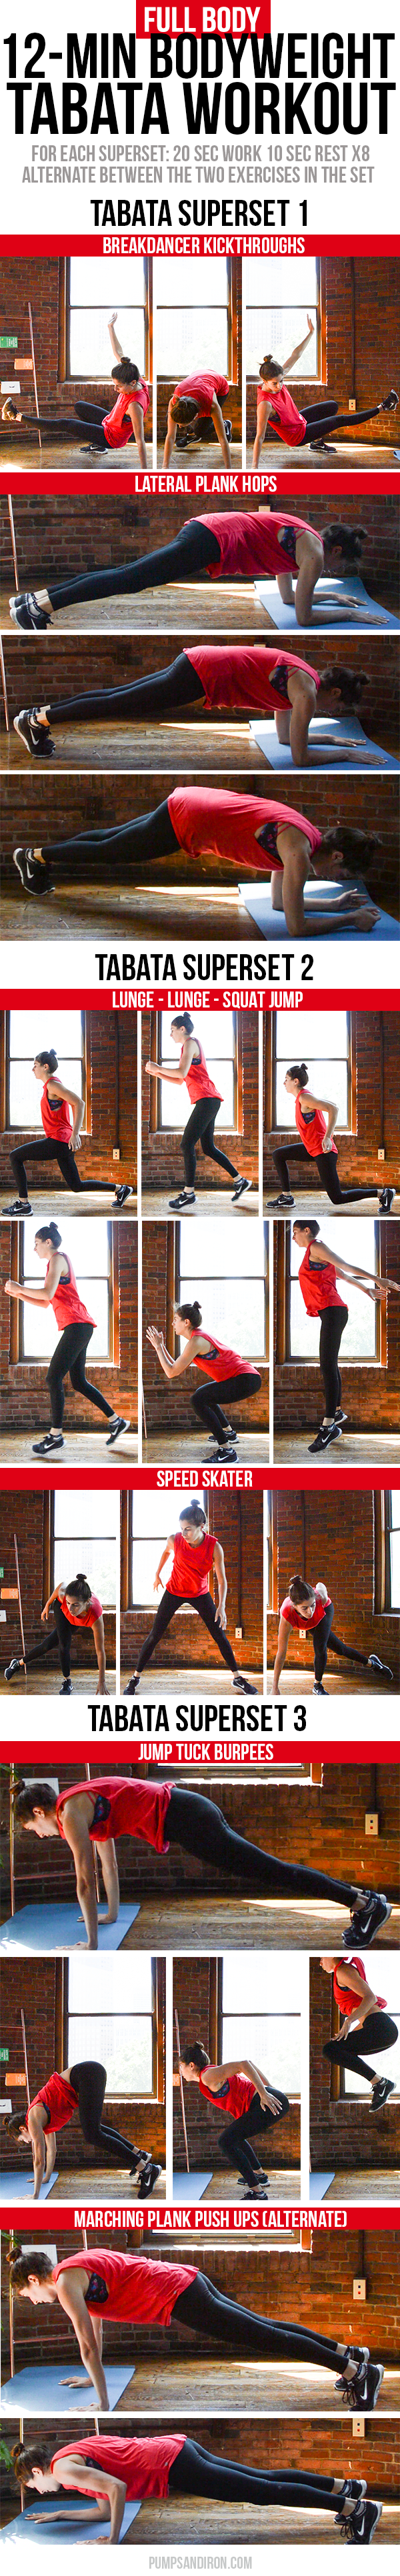 Full-Body & Cardio Tabata Workout - 12 minute long and made up of three tabata supersets of bodyweight exercises